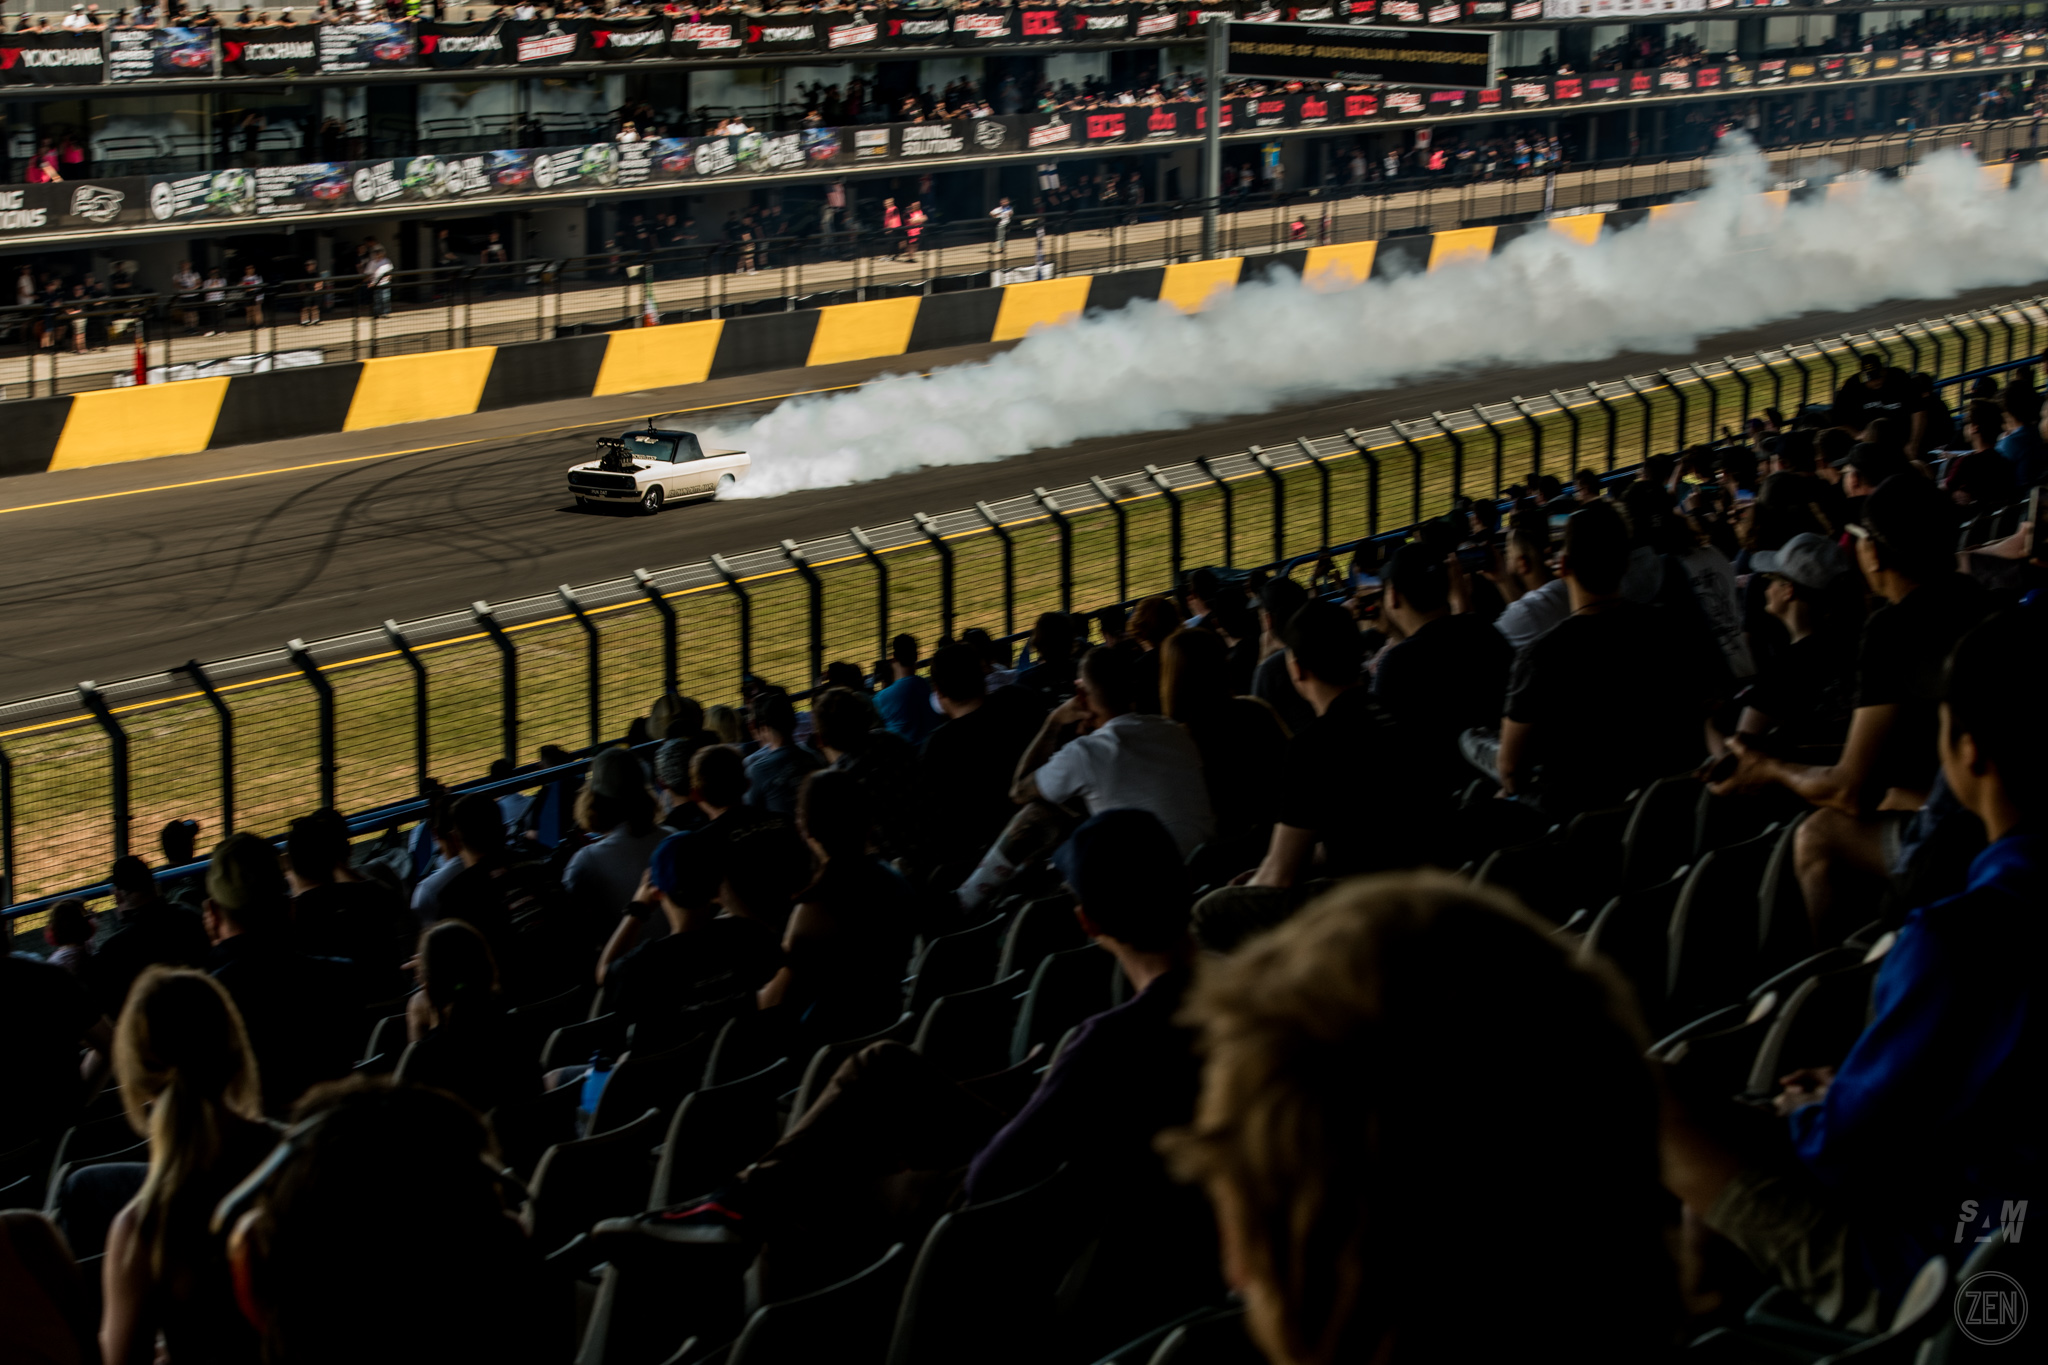 2019-10-18 - WTAC Day 01 043